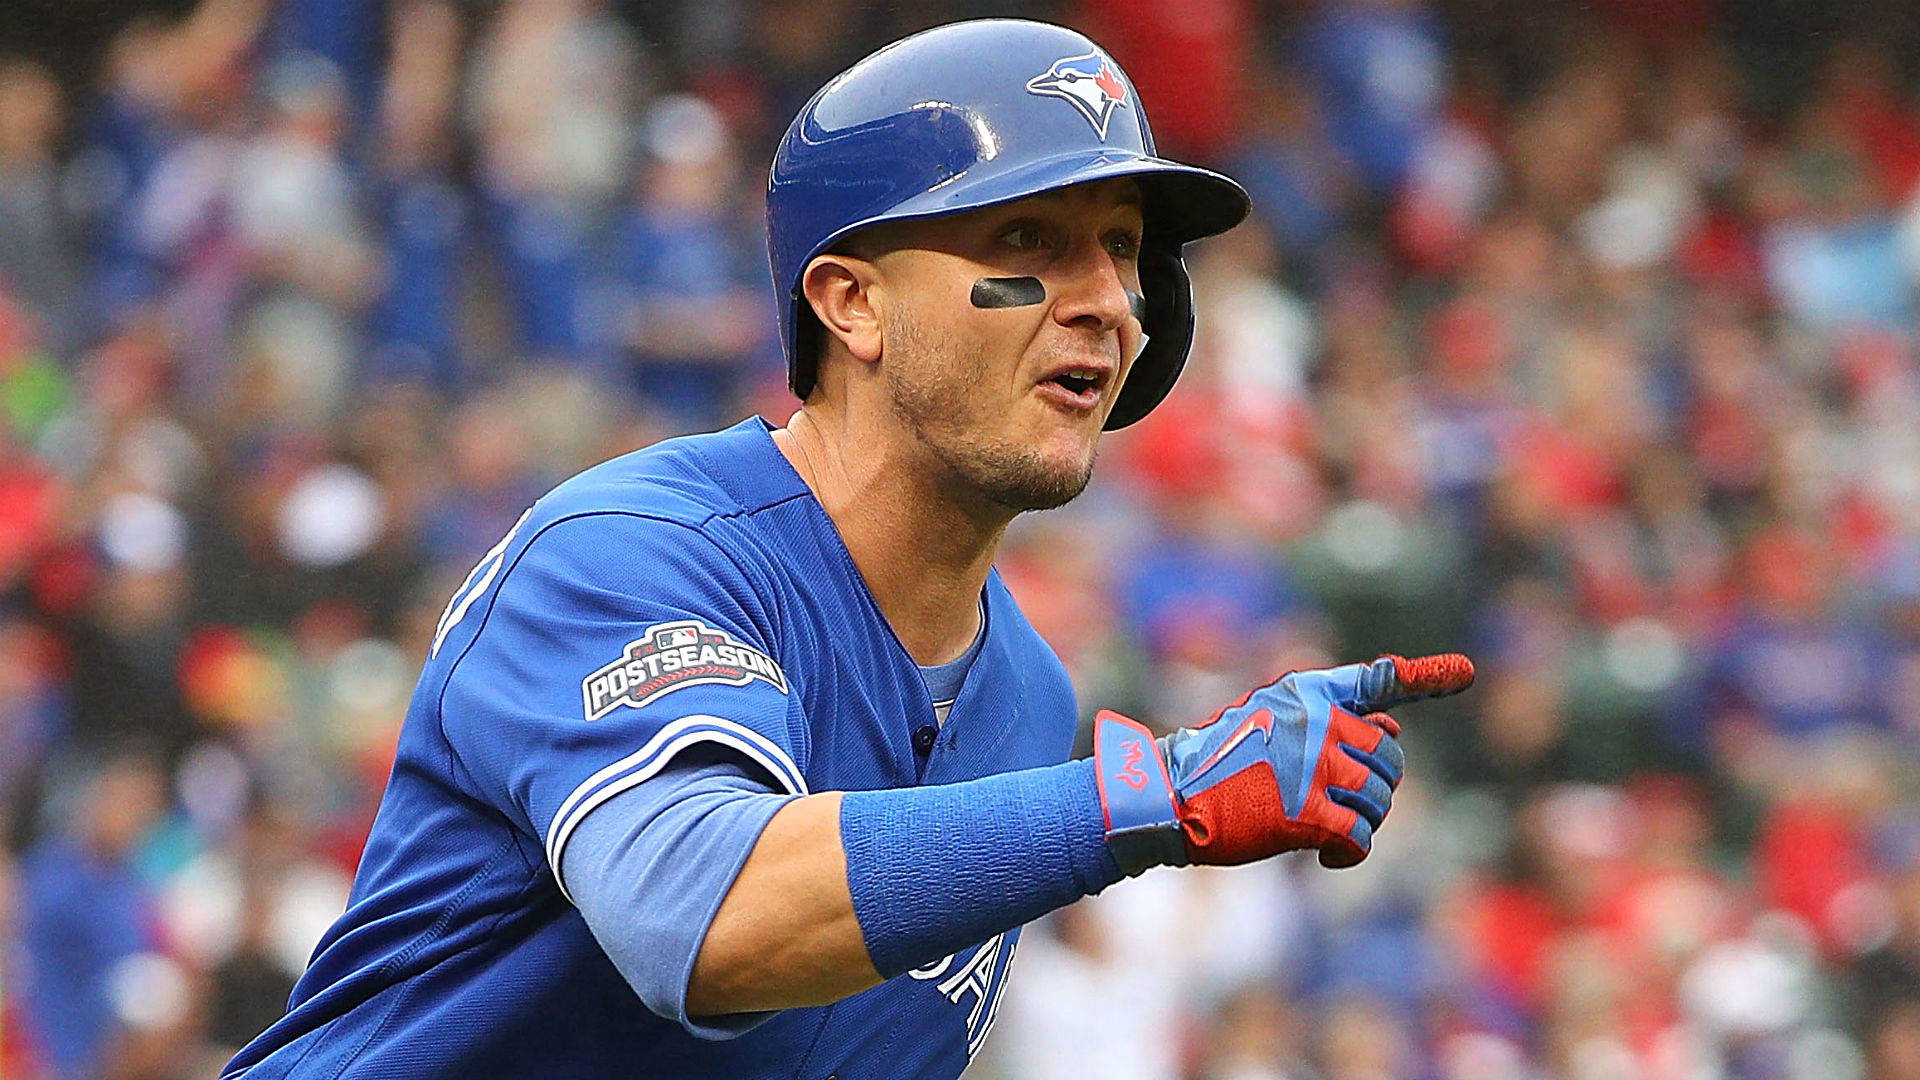 Tulowitzki leaves Friday's Jays game with injury